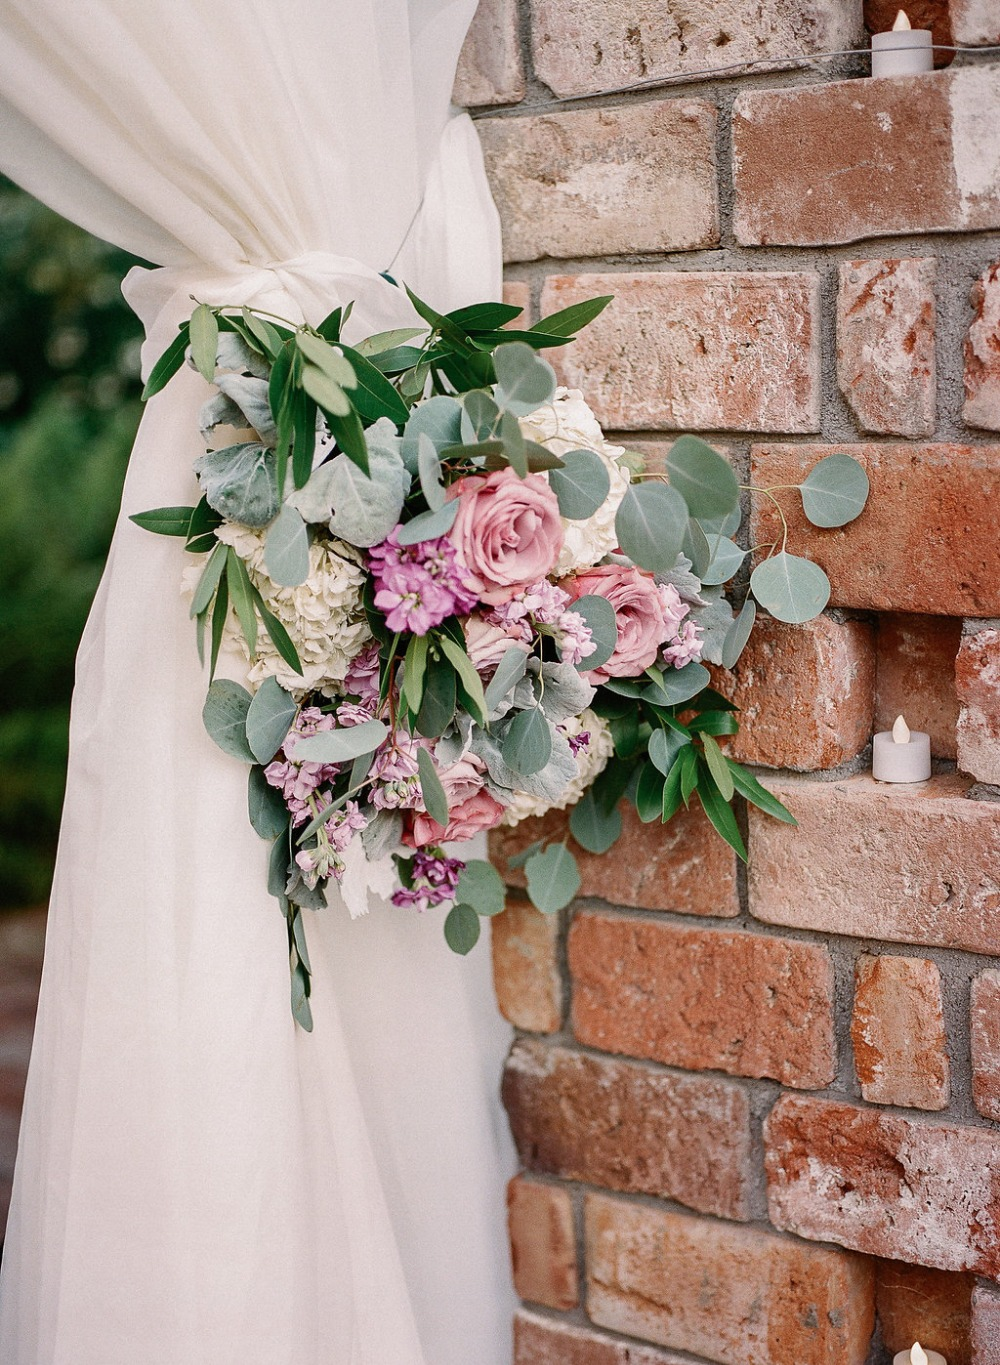 Floral tie back ceremony decor